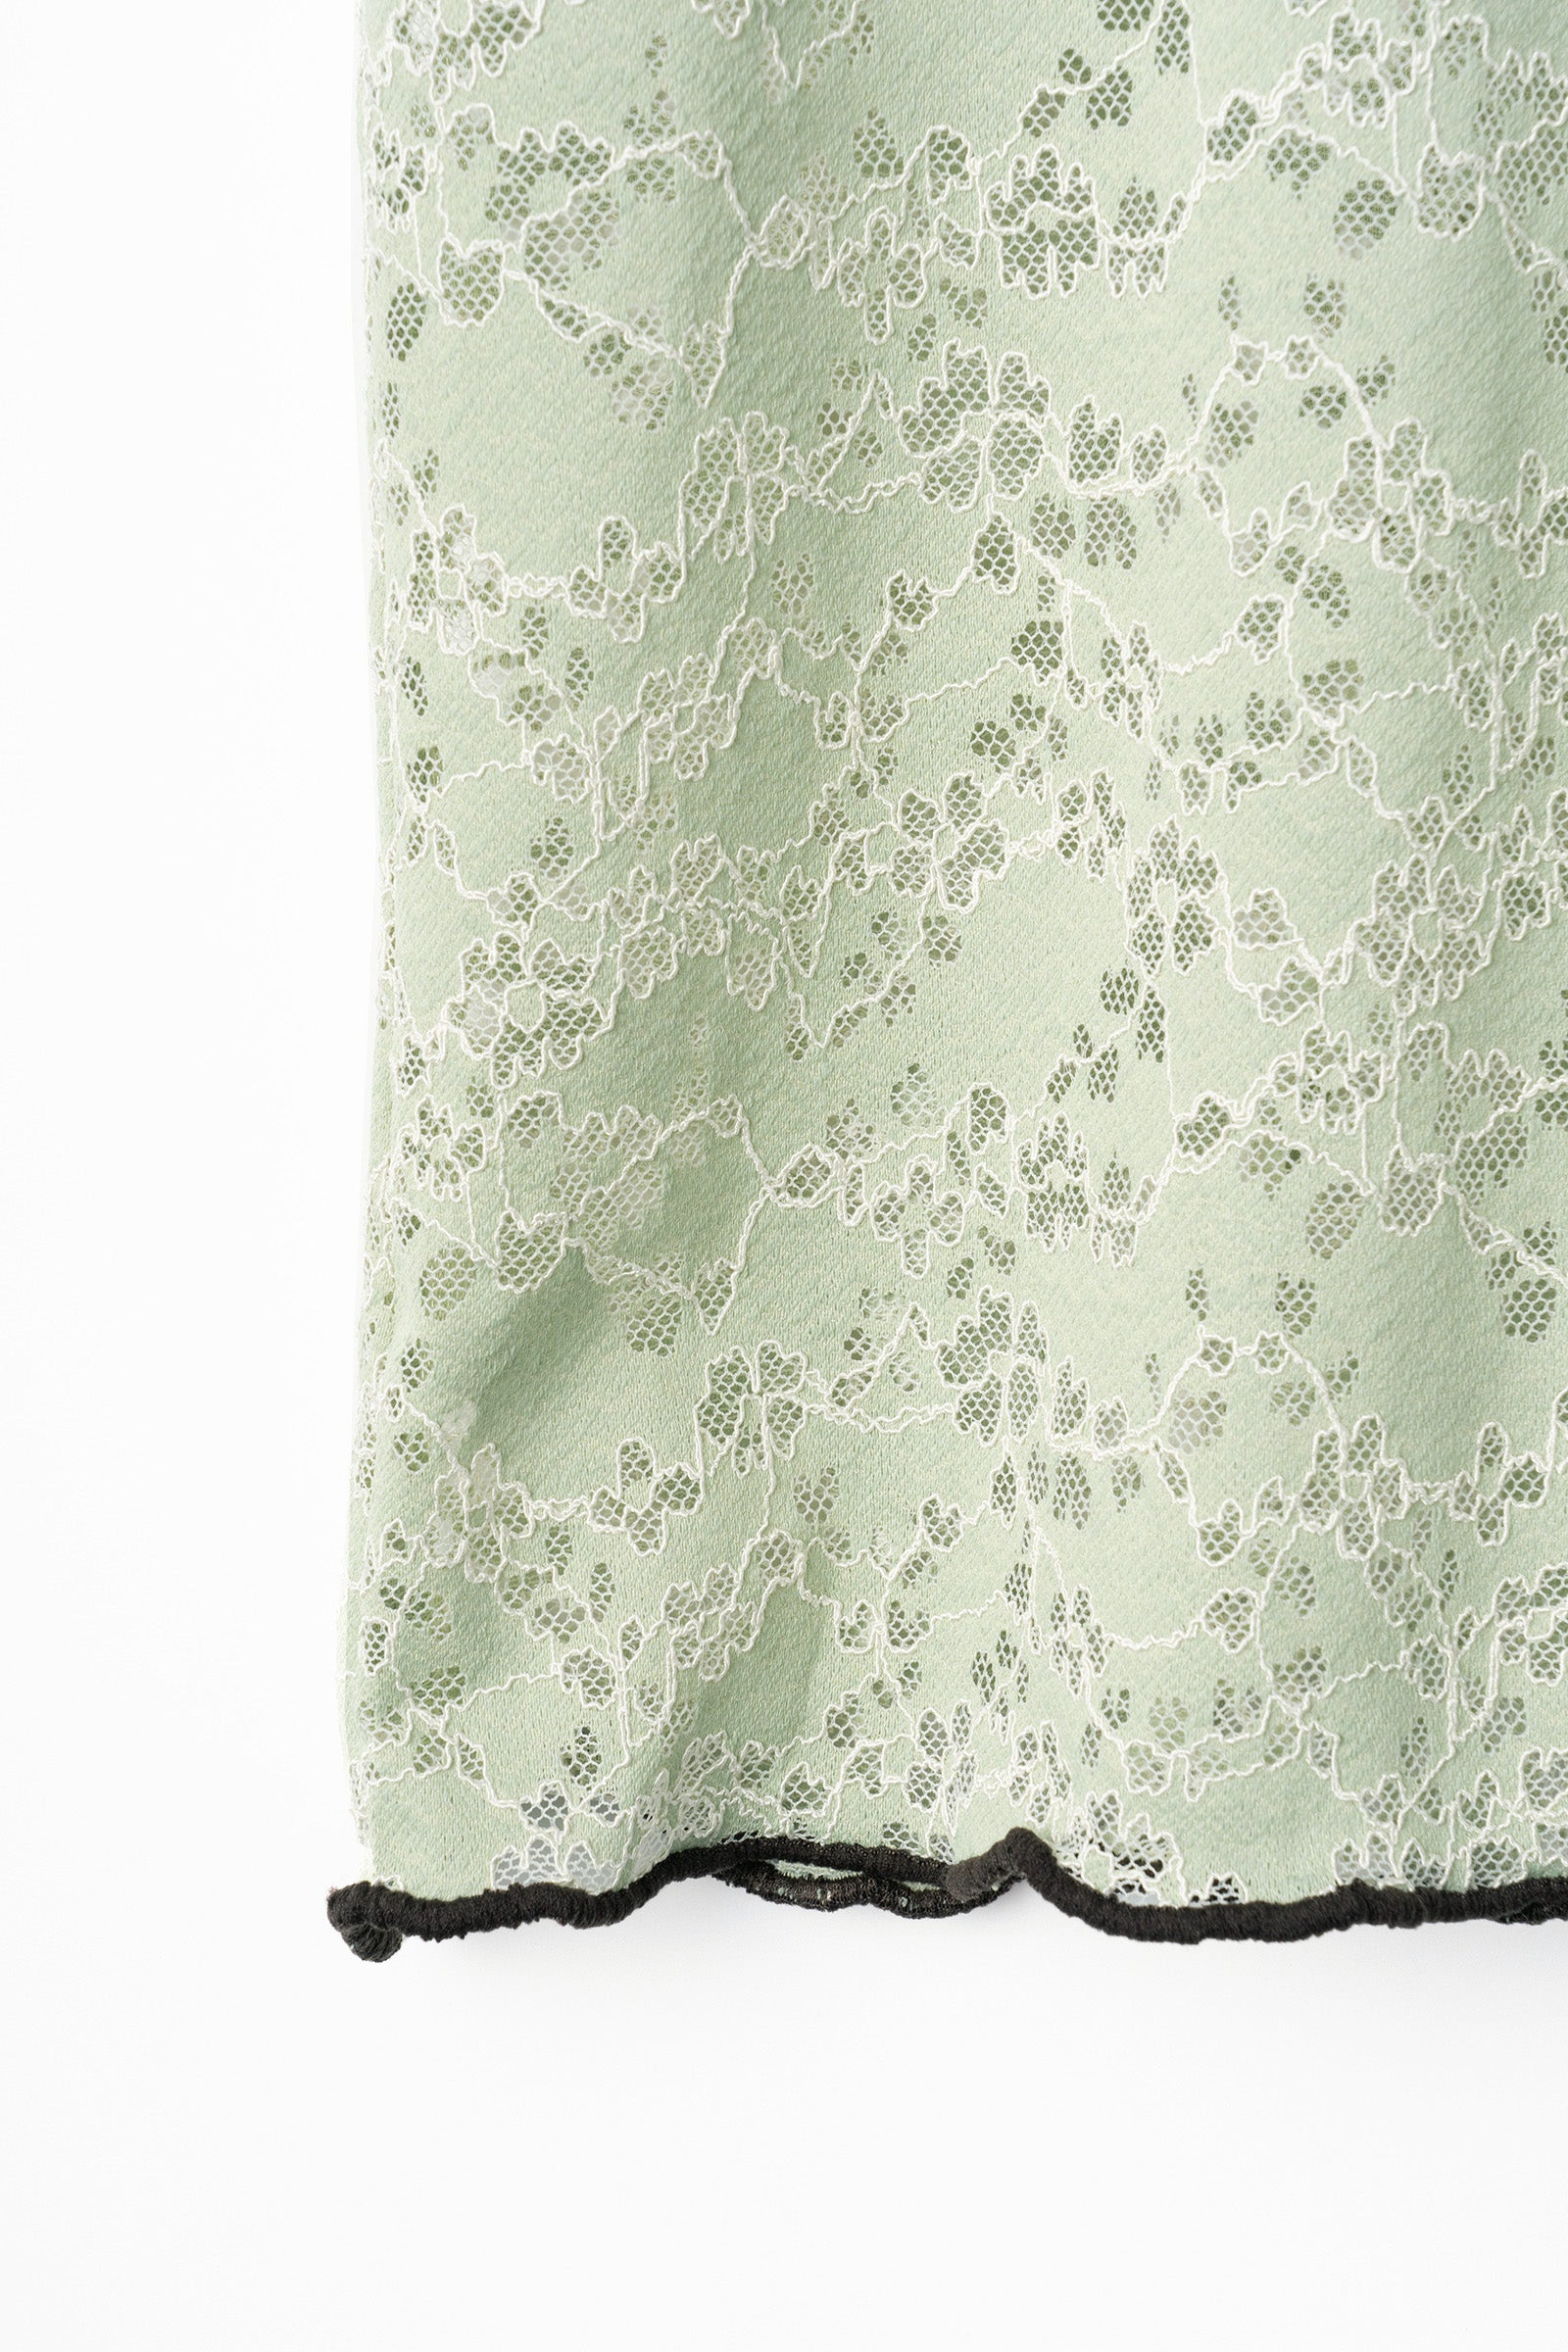 MURRAL stretch lace top (light green)